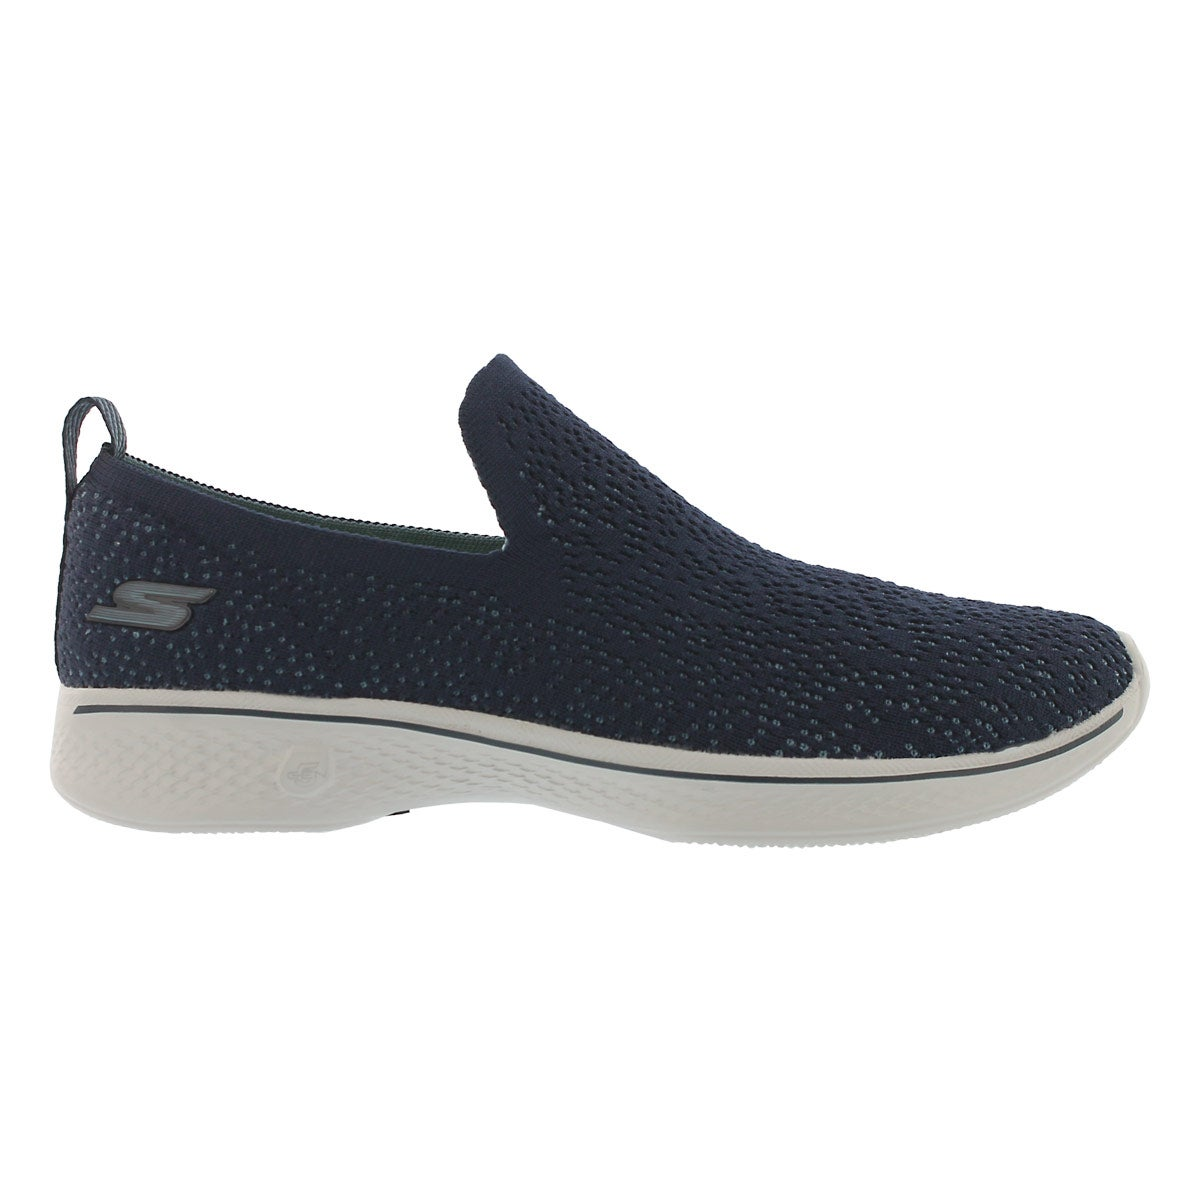 Lds GO Walk 4 navy slip on shoe